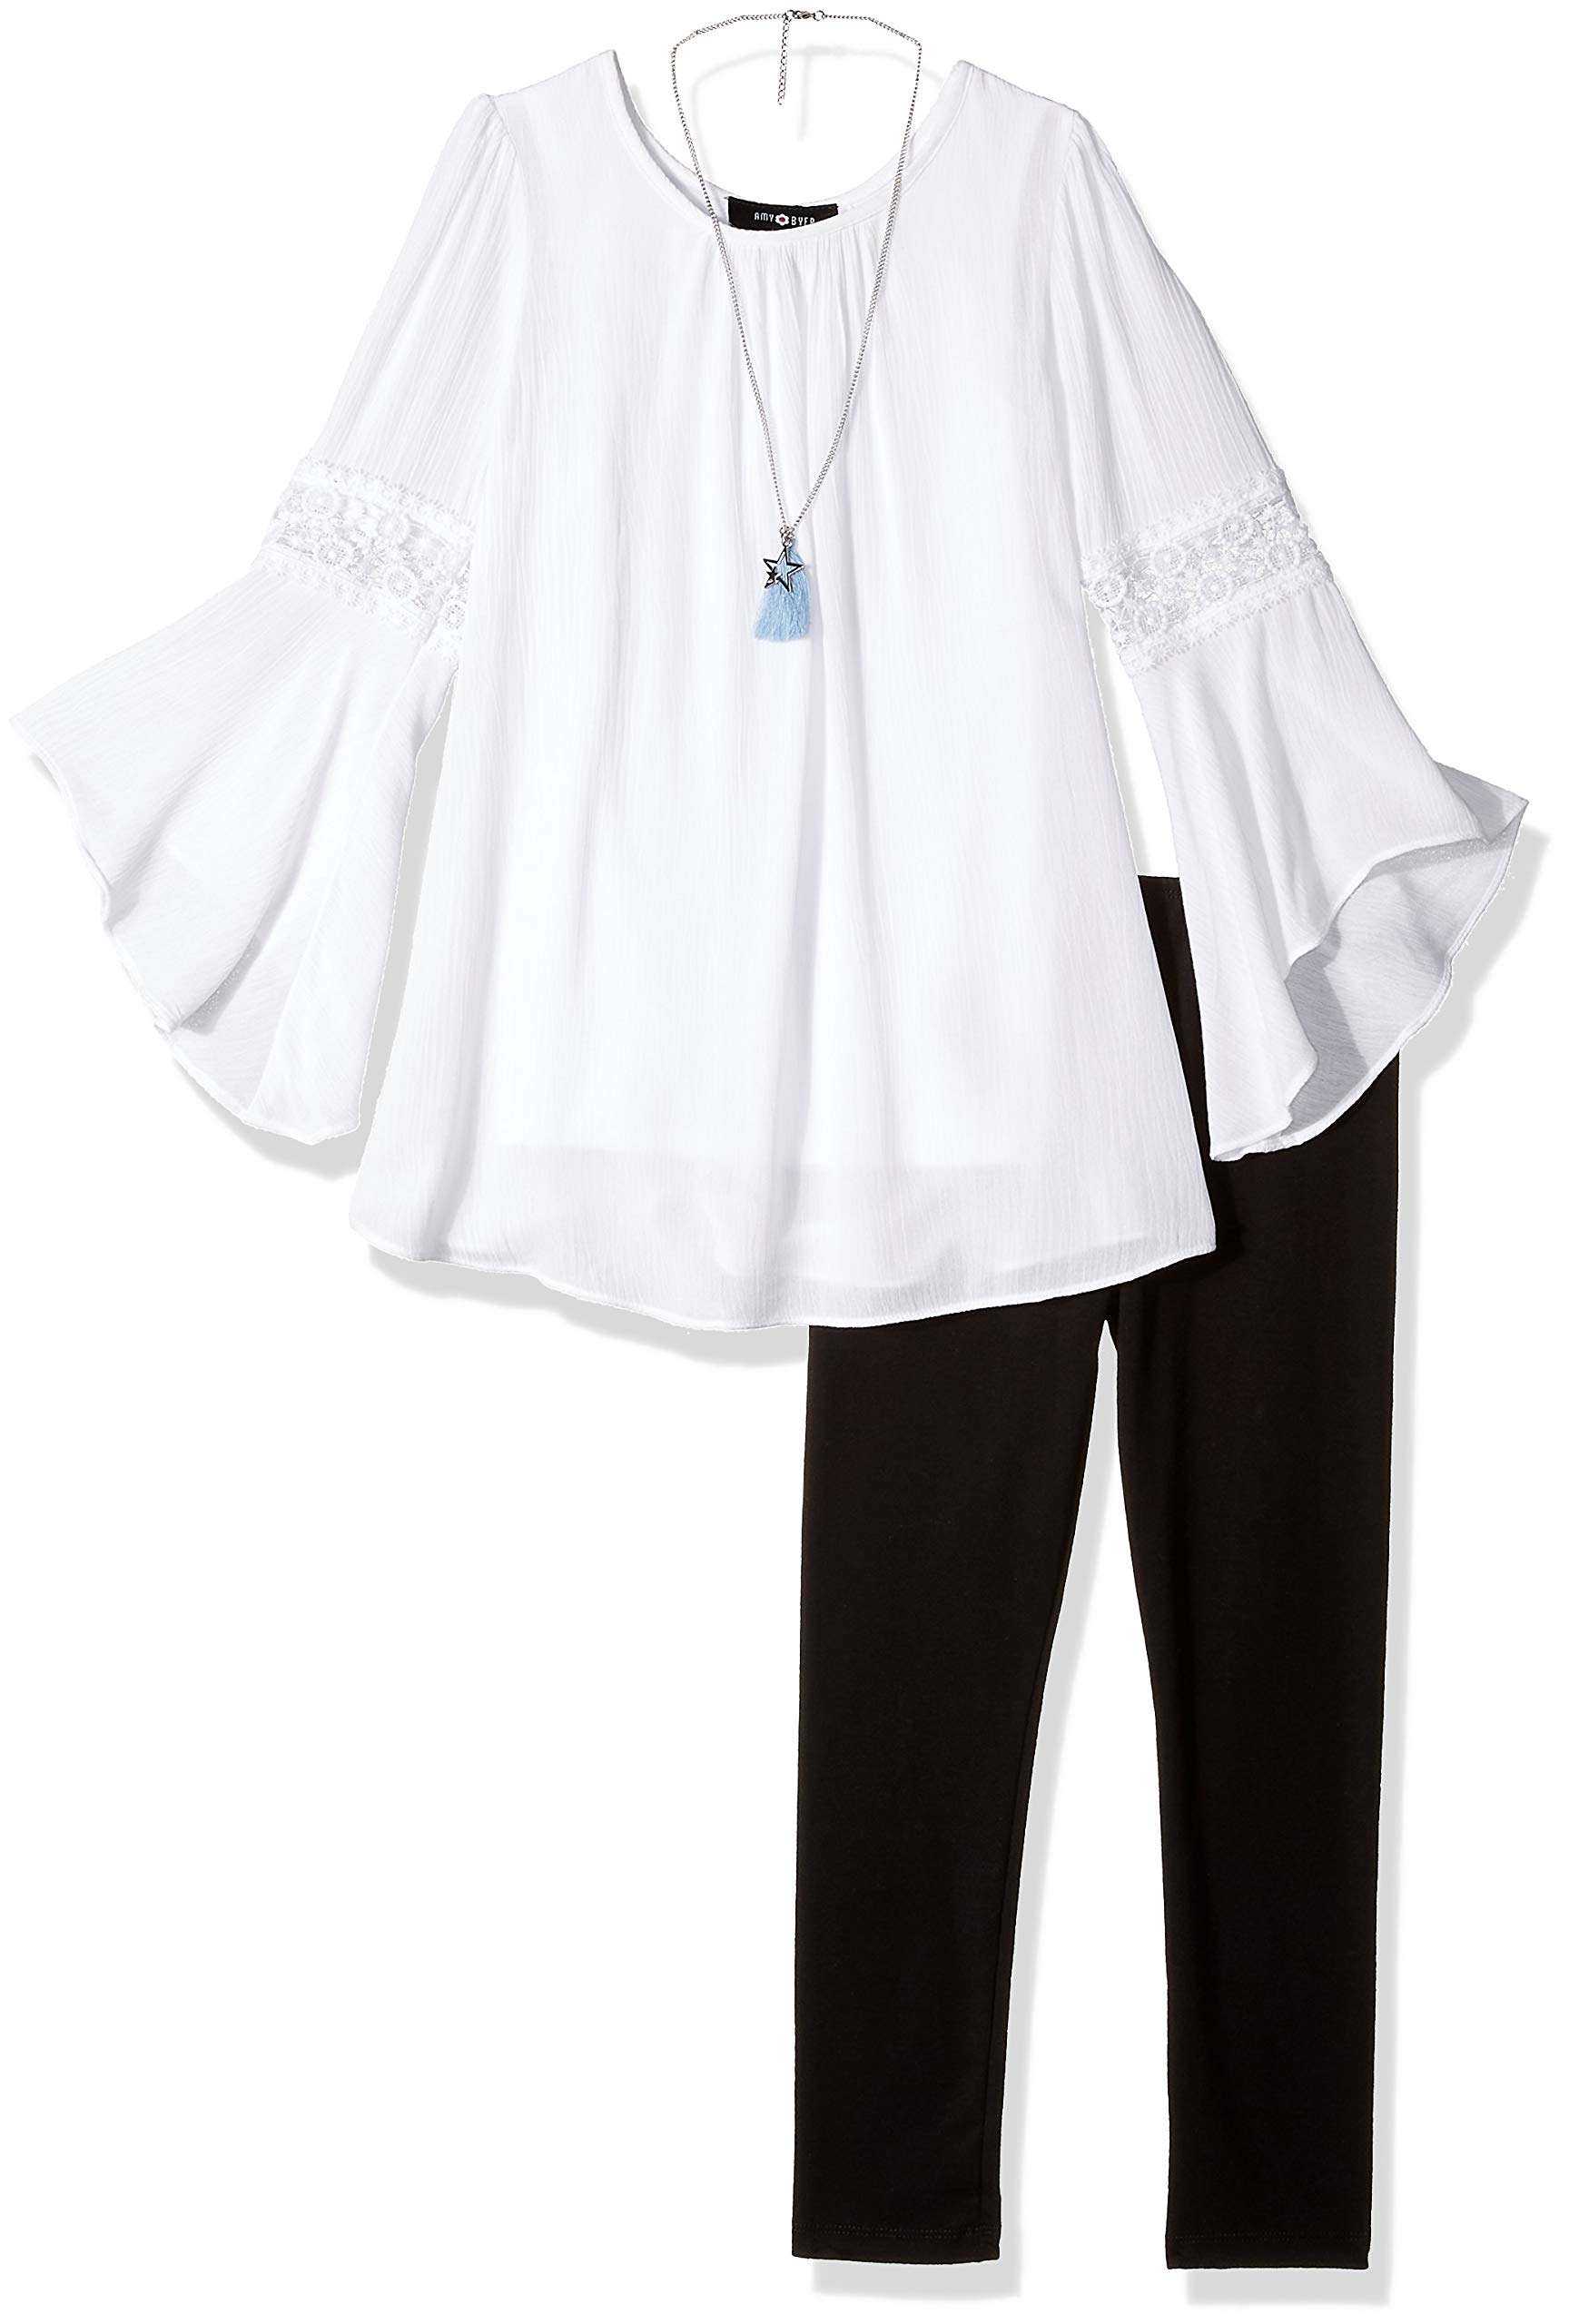 Amy Byer Girls' Big Bell Sleeve Top and Leggings 2-Piece Set with Necklace, White S by Amy Byer